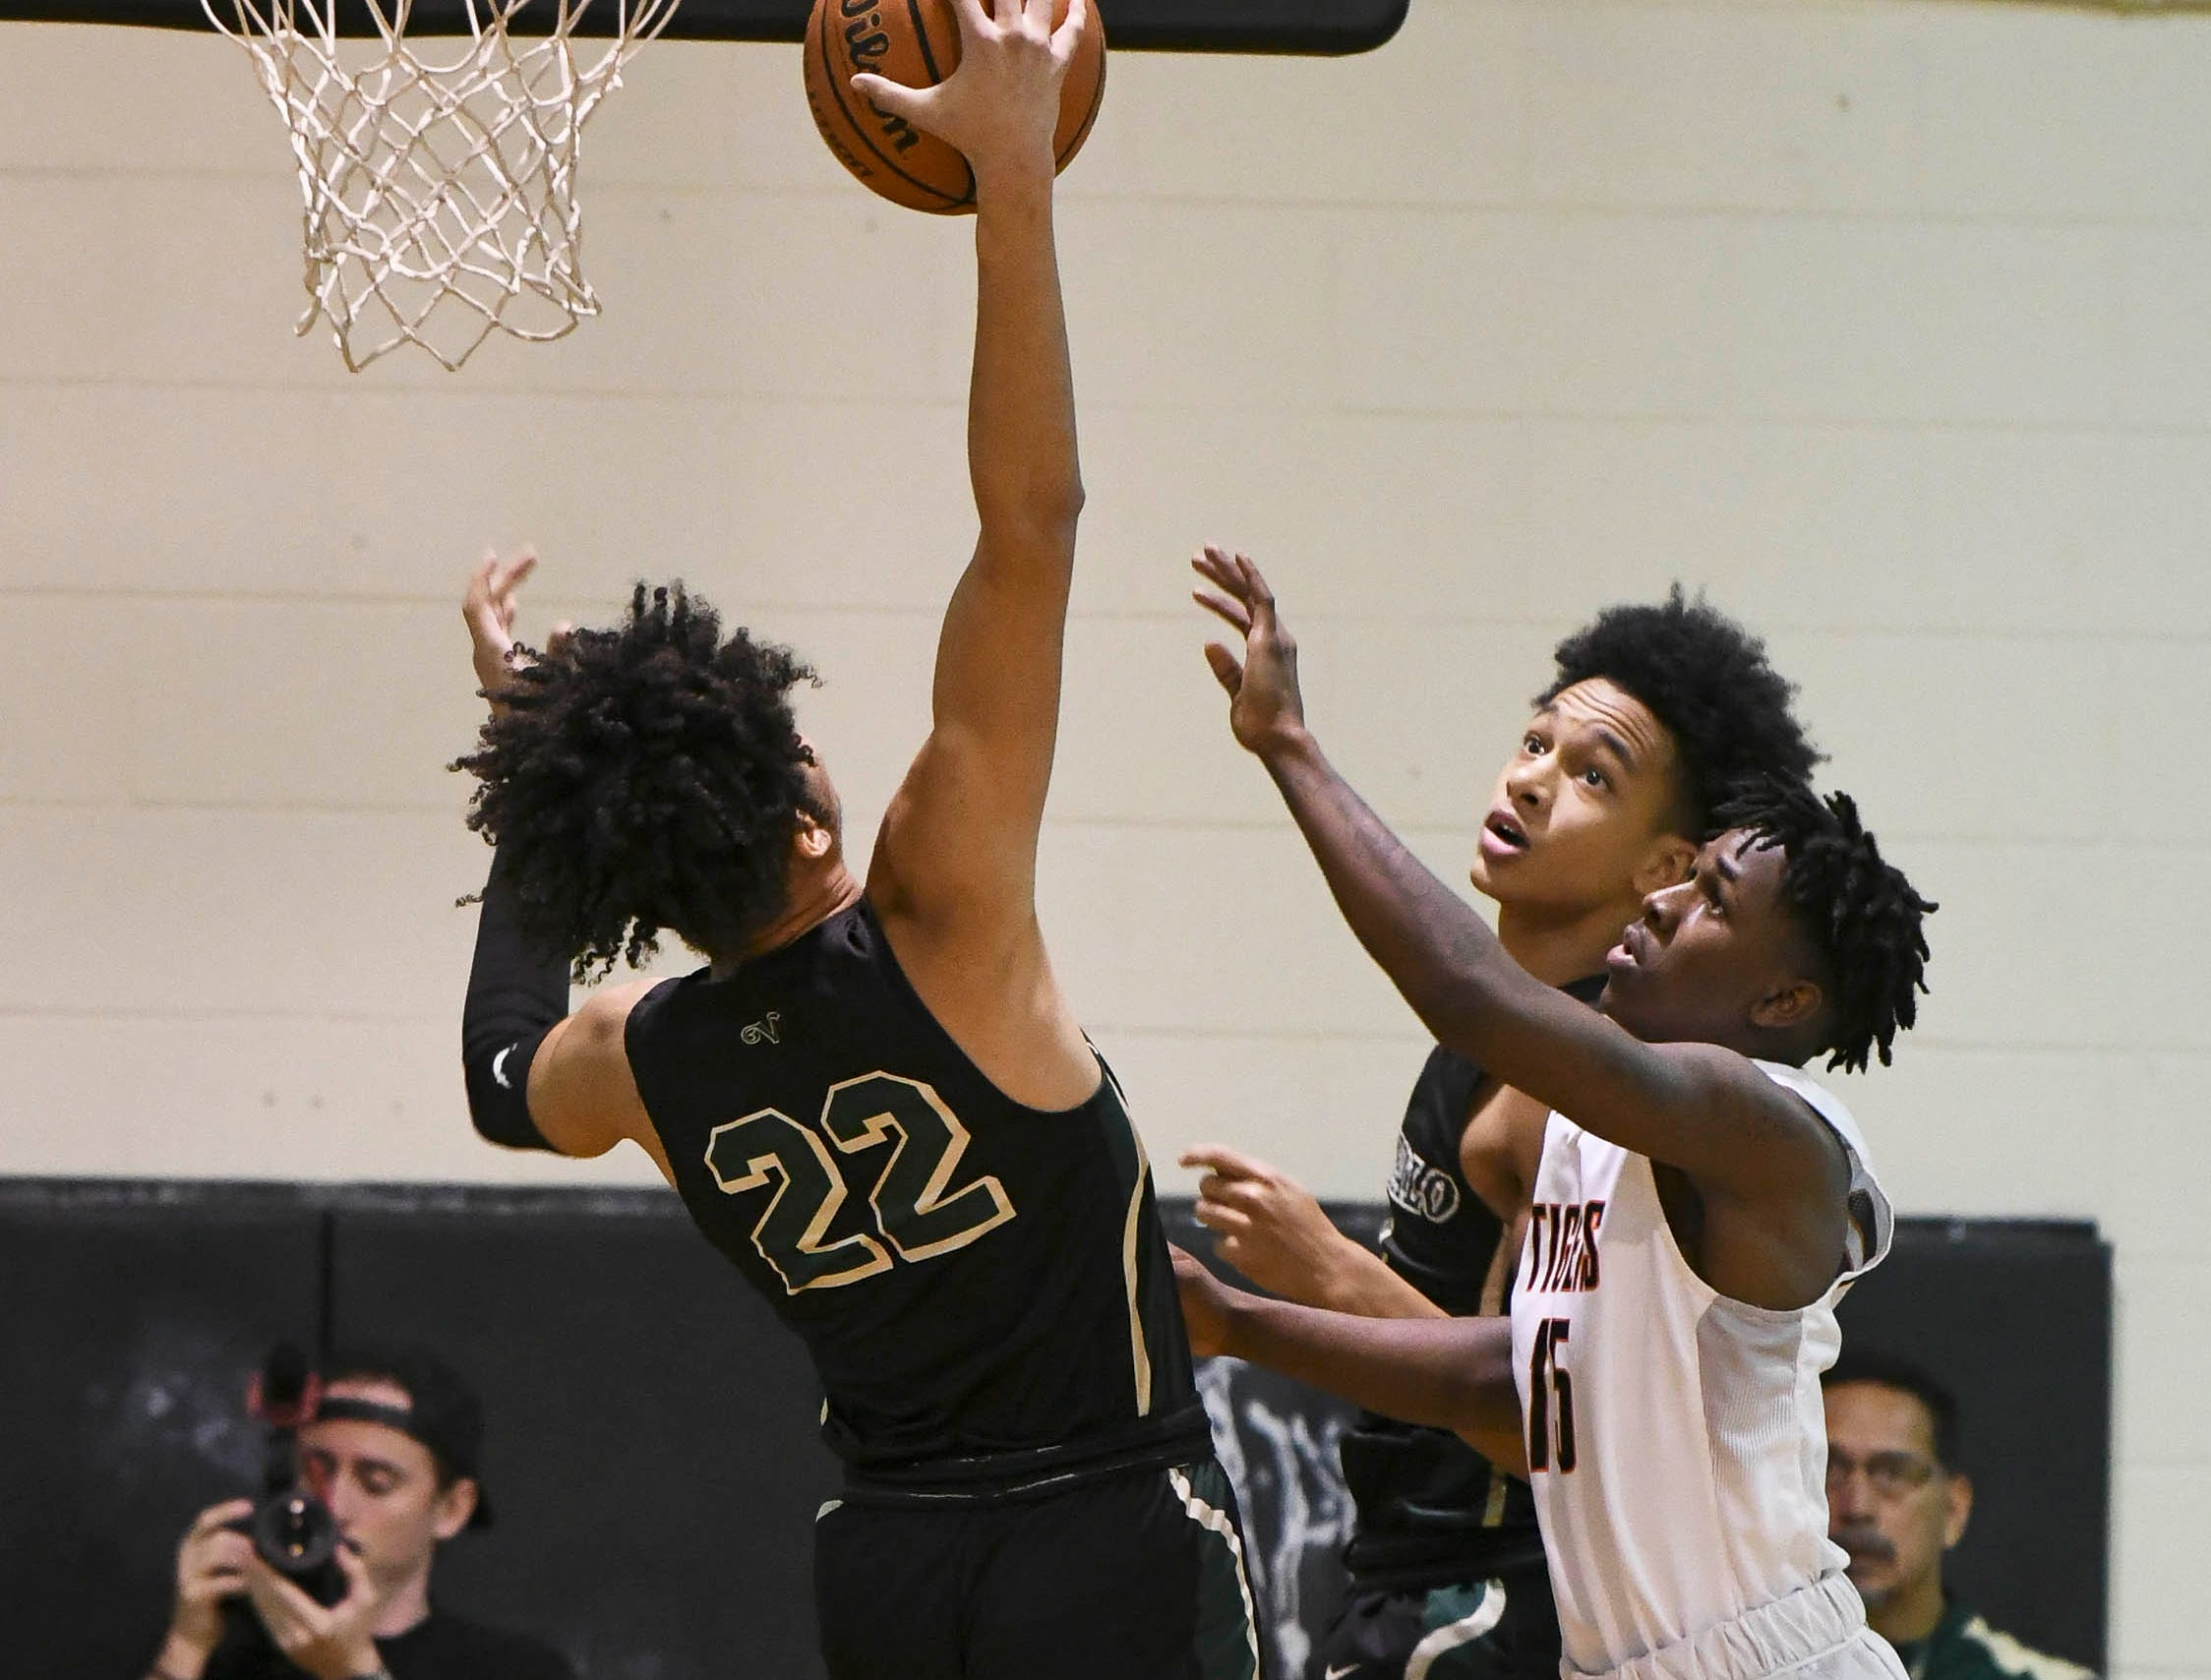 Brandon Farmer of The Villages (22) grabs a rebound during Friday's basketball Regional Final in Cocoa